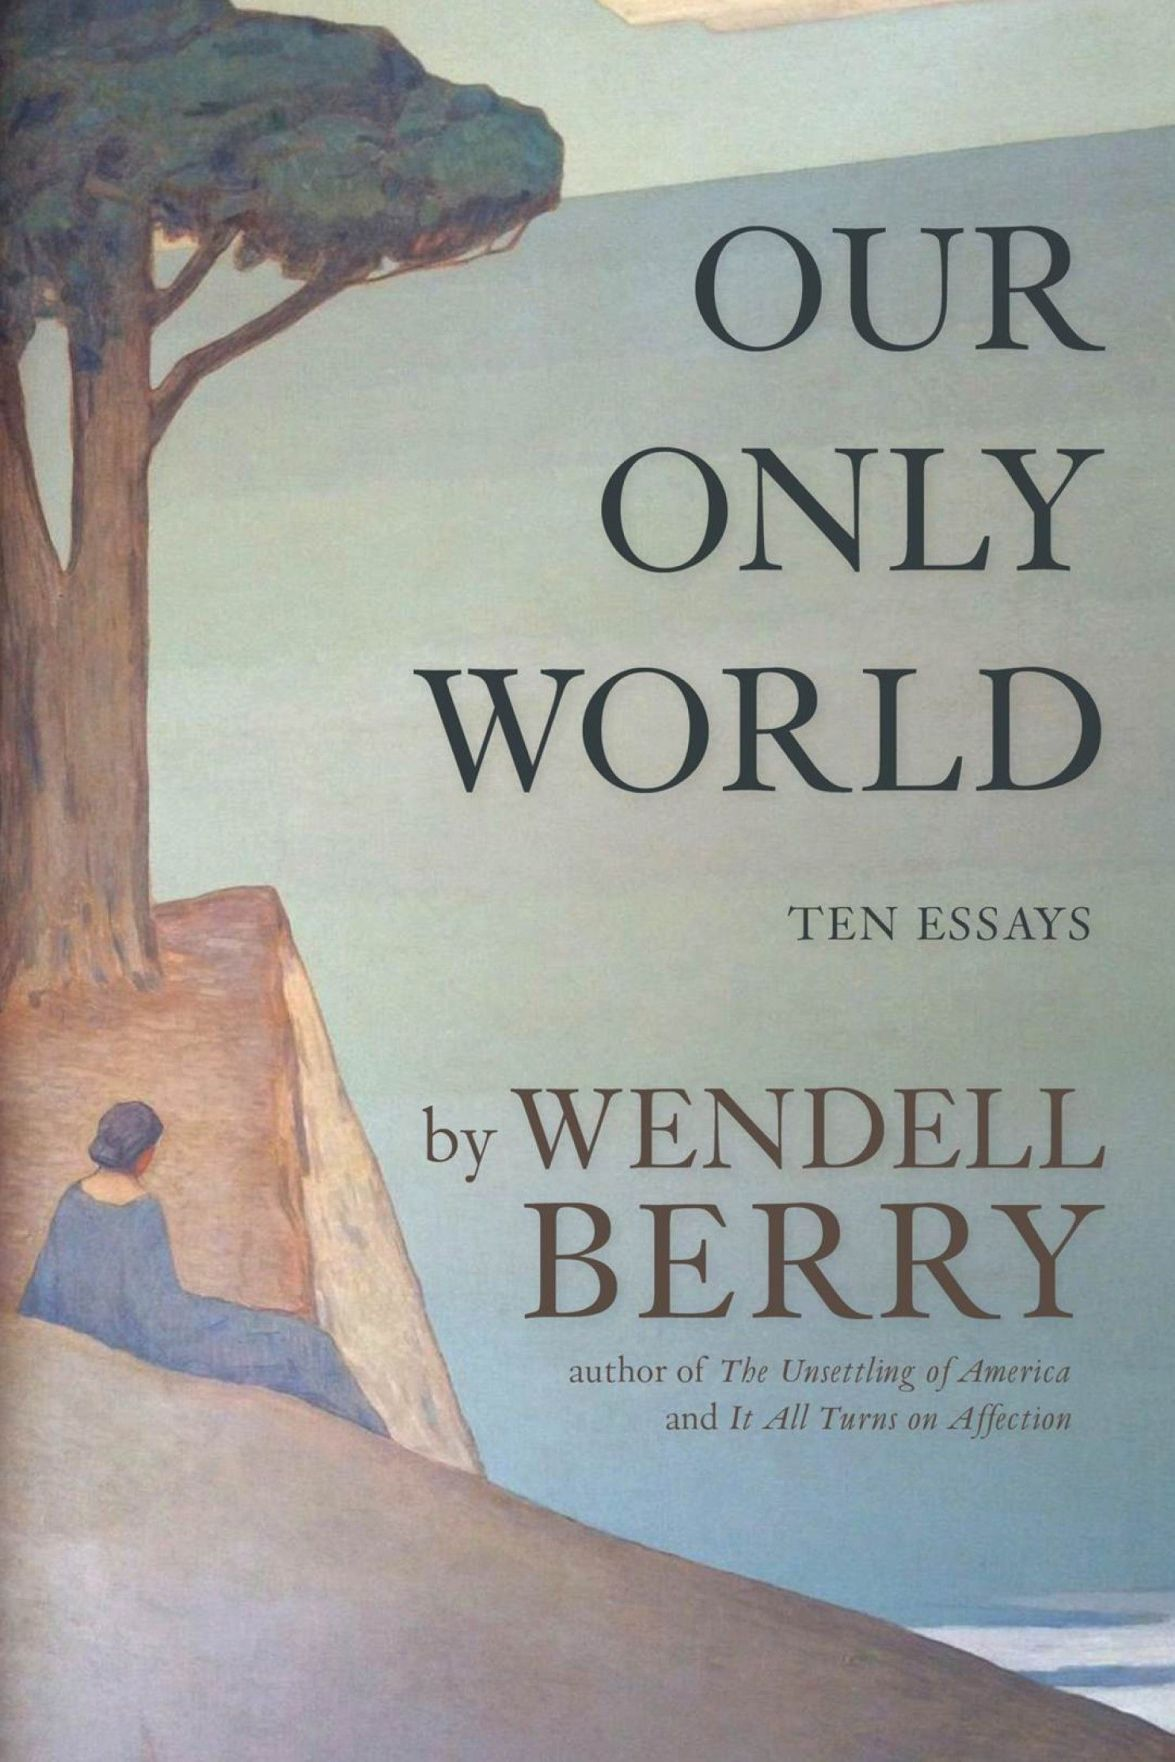 'Our Only World' reflects on people, environment